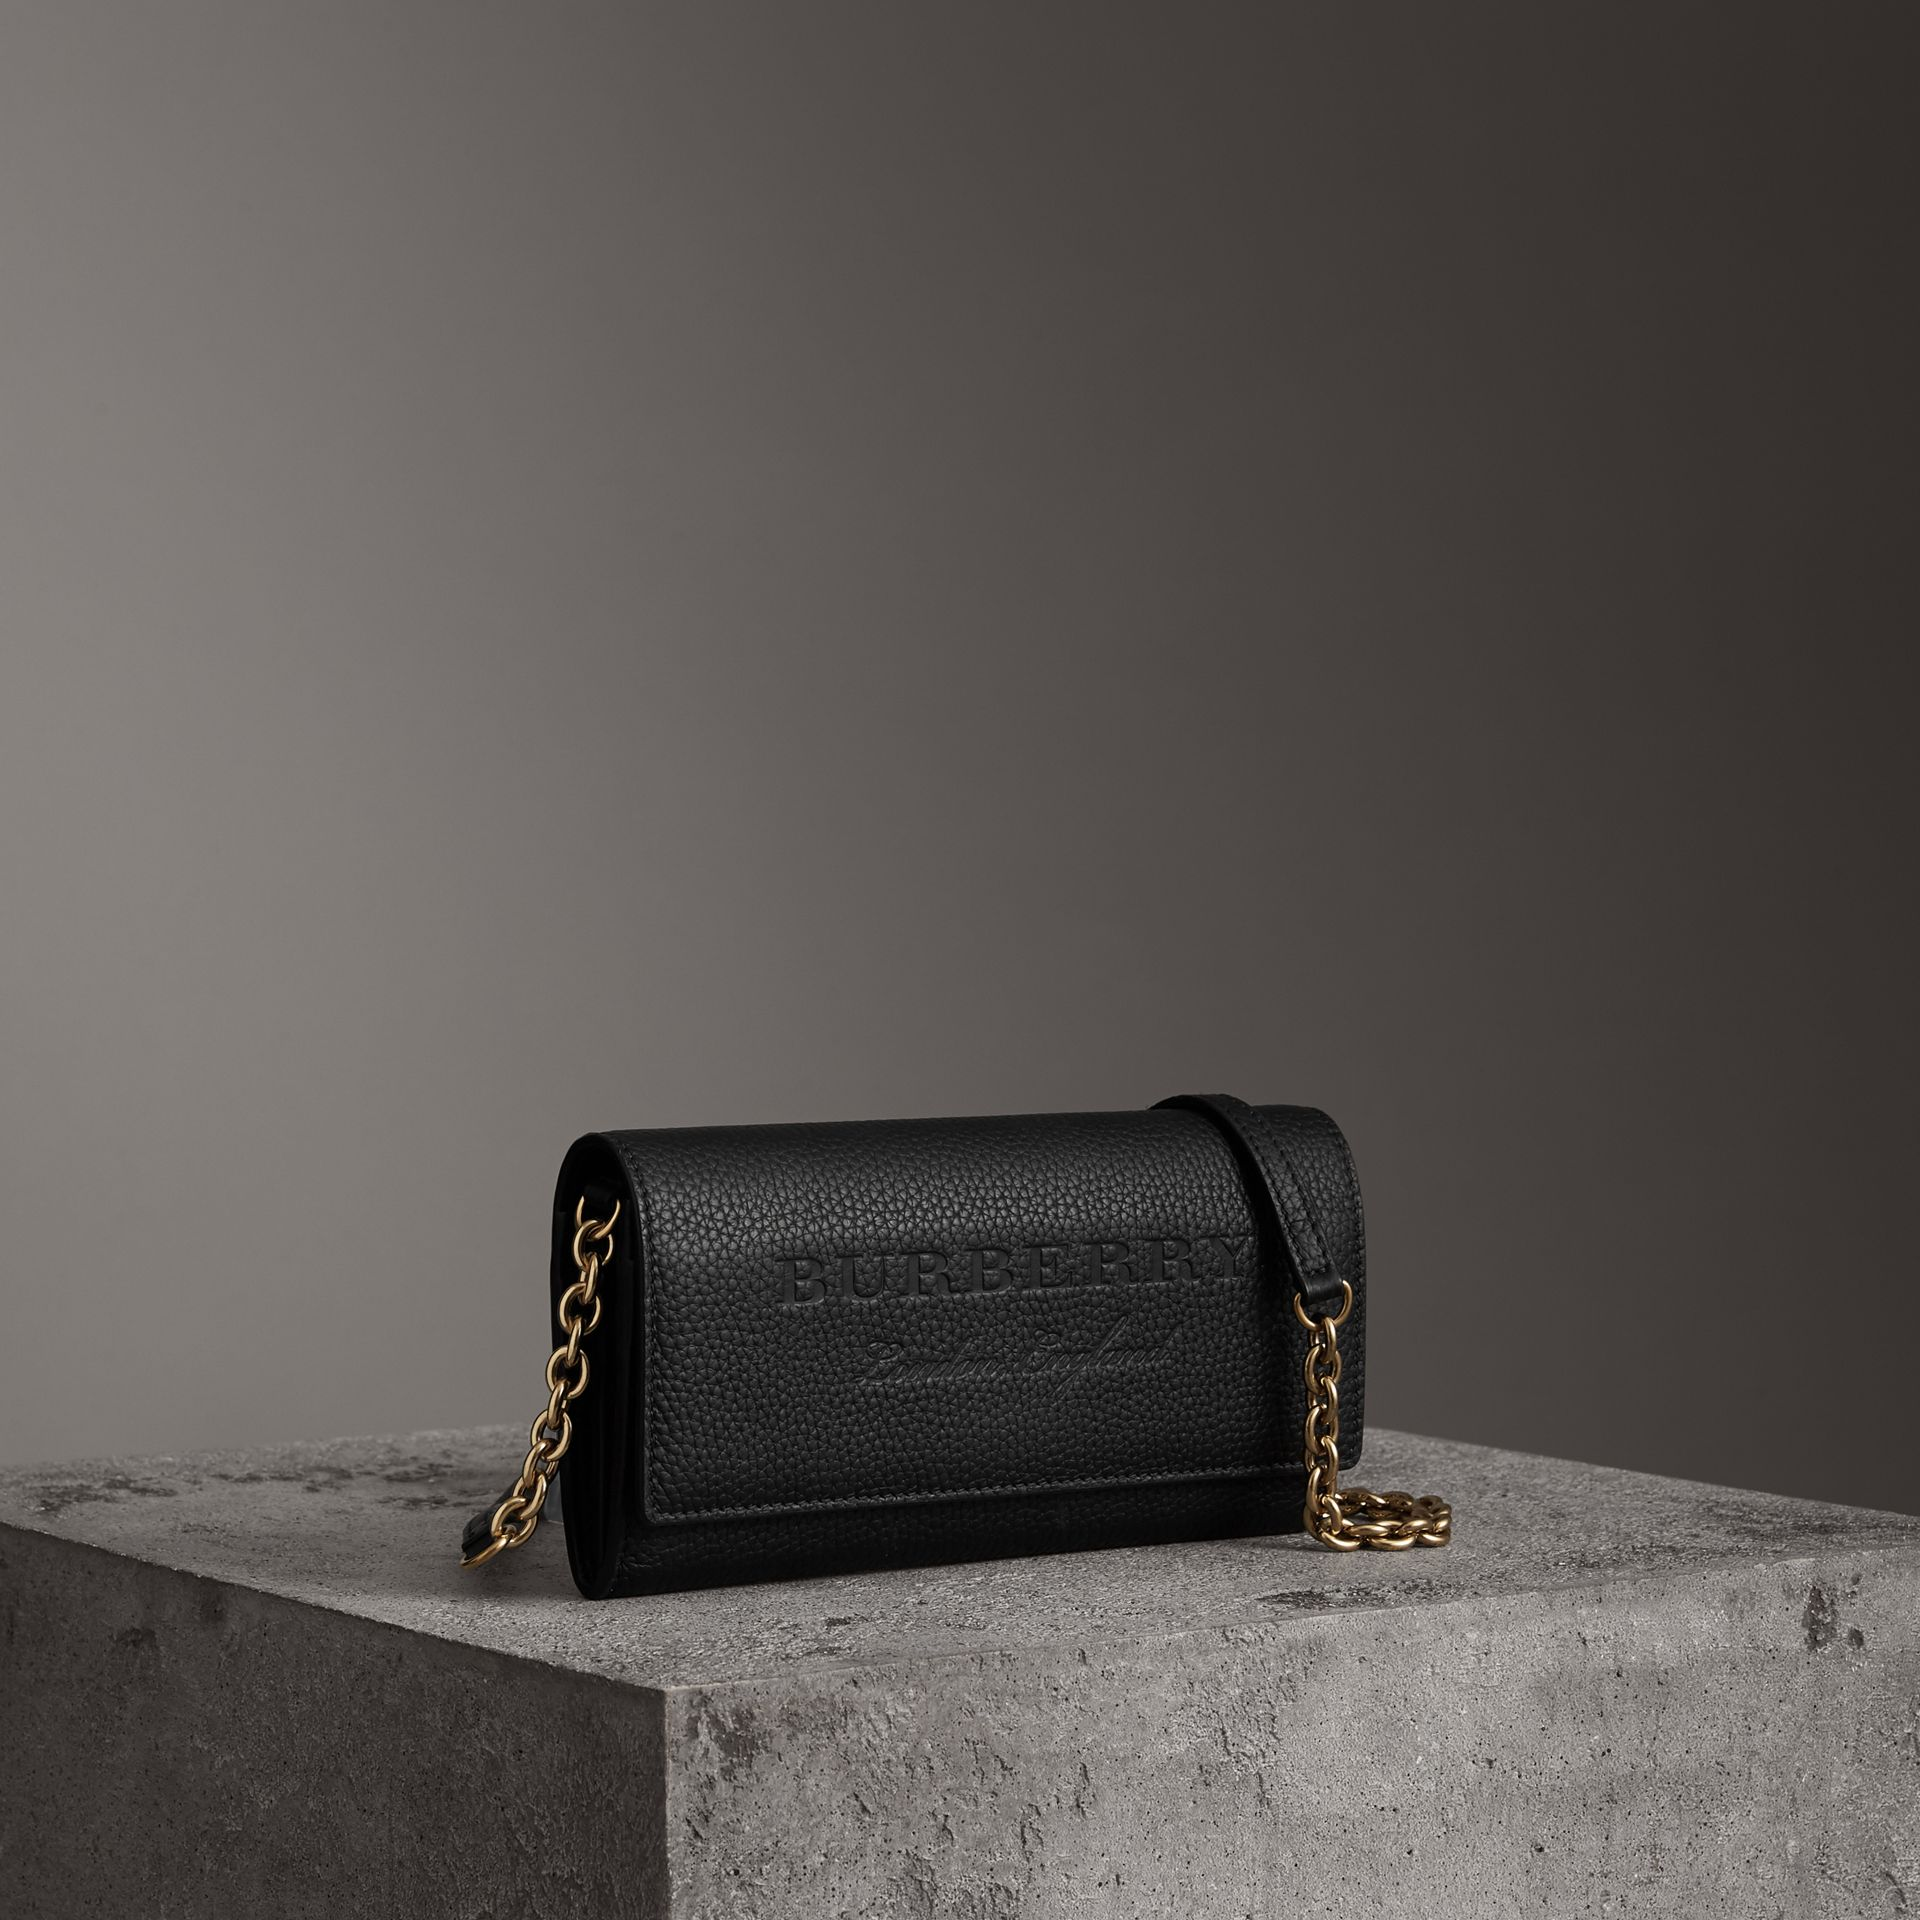 Embossed Leather Wallet with Chain in Black - Women | Burberry Australia - gallery image 0